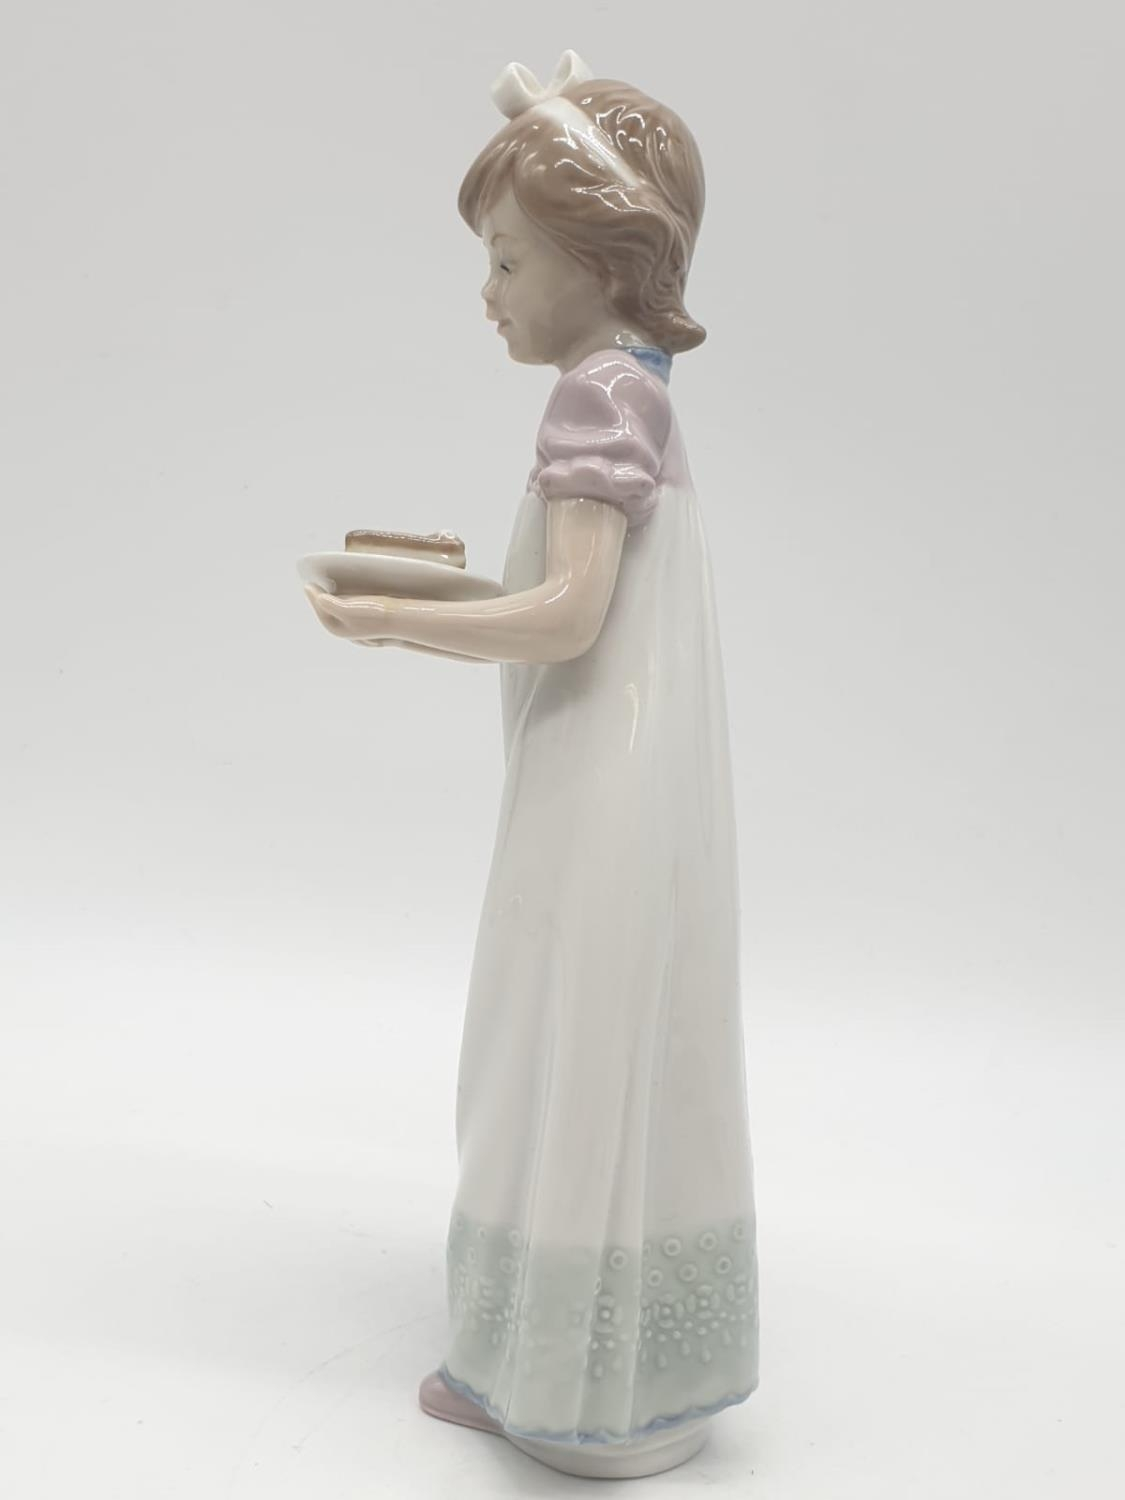 Lladro girl holding a cake on a plate. 20cm tall. - Image 3 of 6